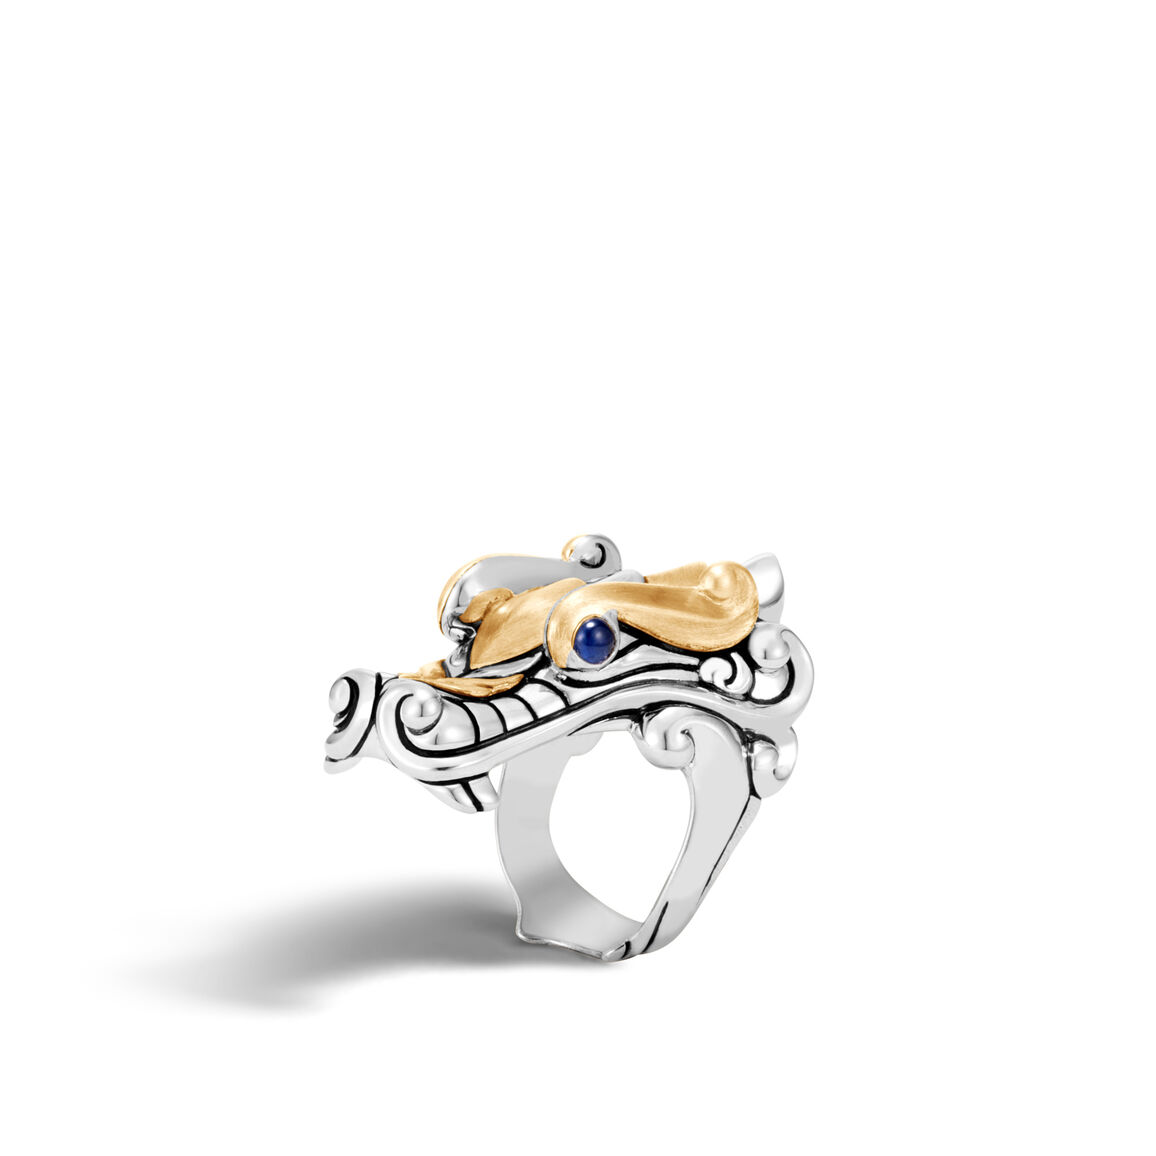 Legends Naga Ring in Silver and Brushed 18K Gold